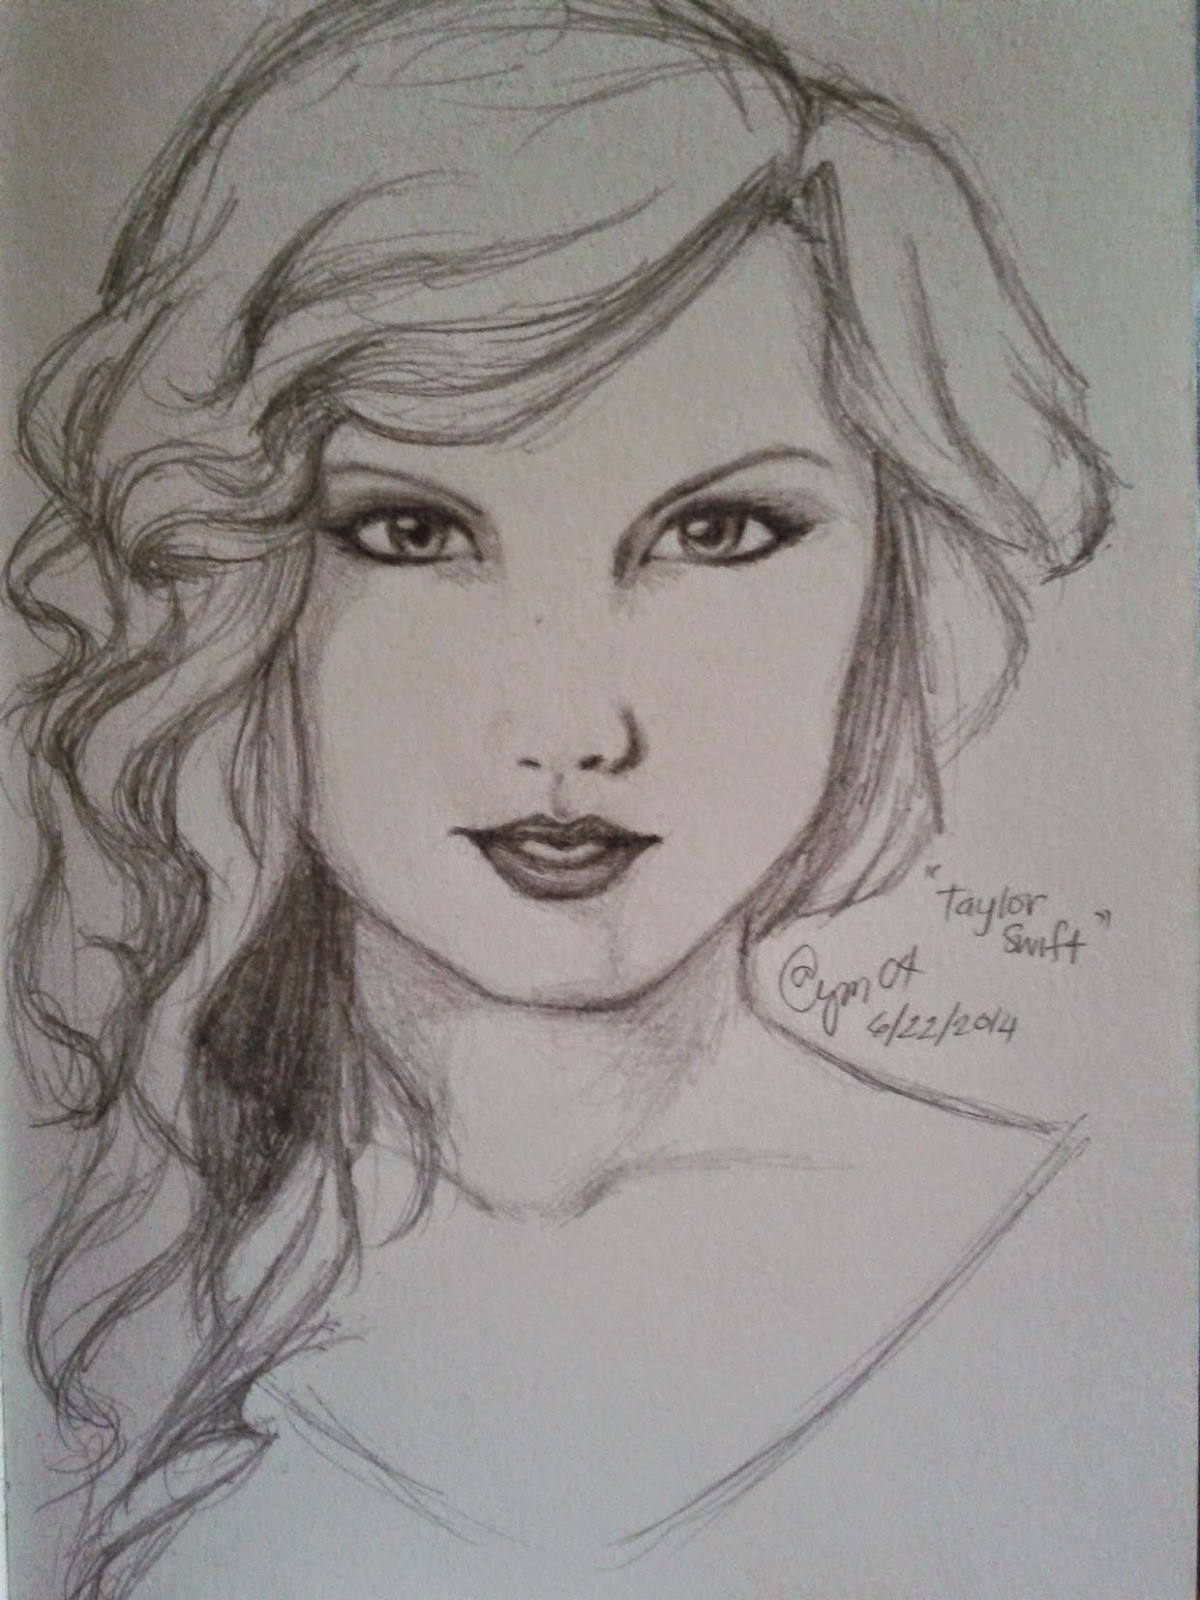 Art taylor swift pencil drawing dandiely ♥